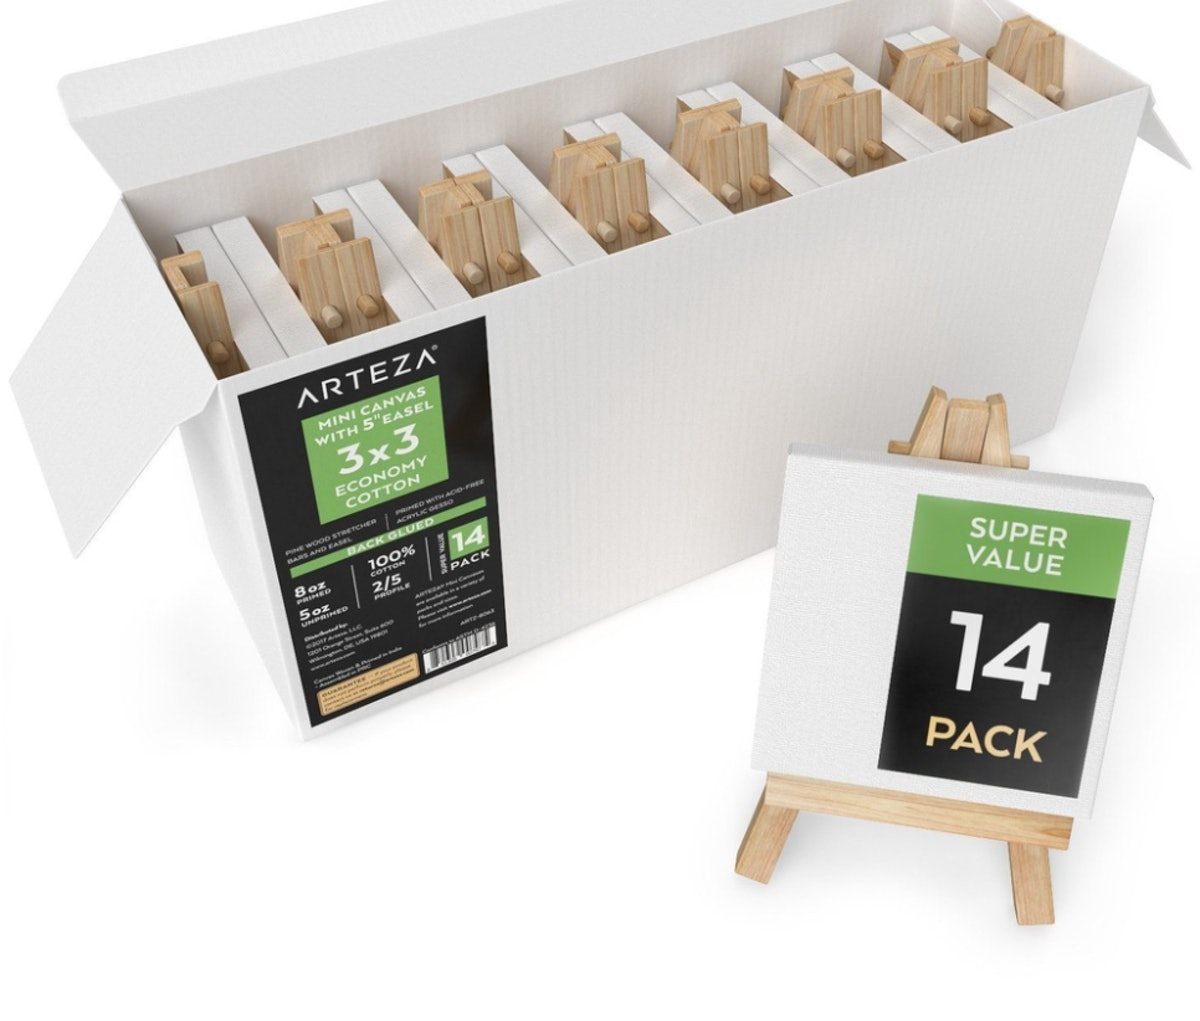 Mini Stretched Canvas, 3 x 3 in - Pack of 14